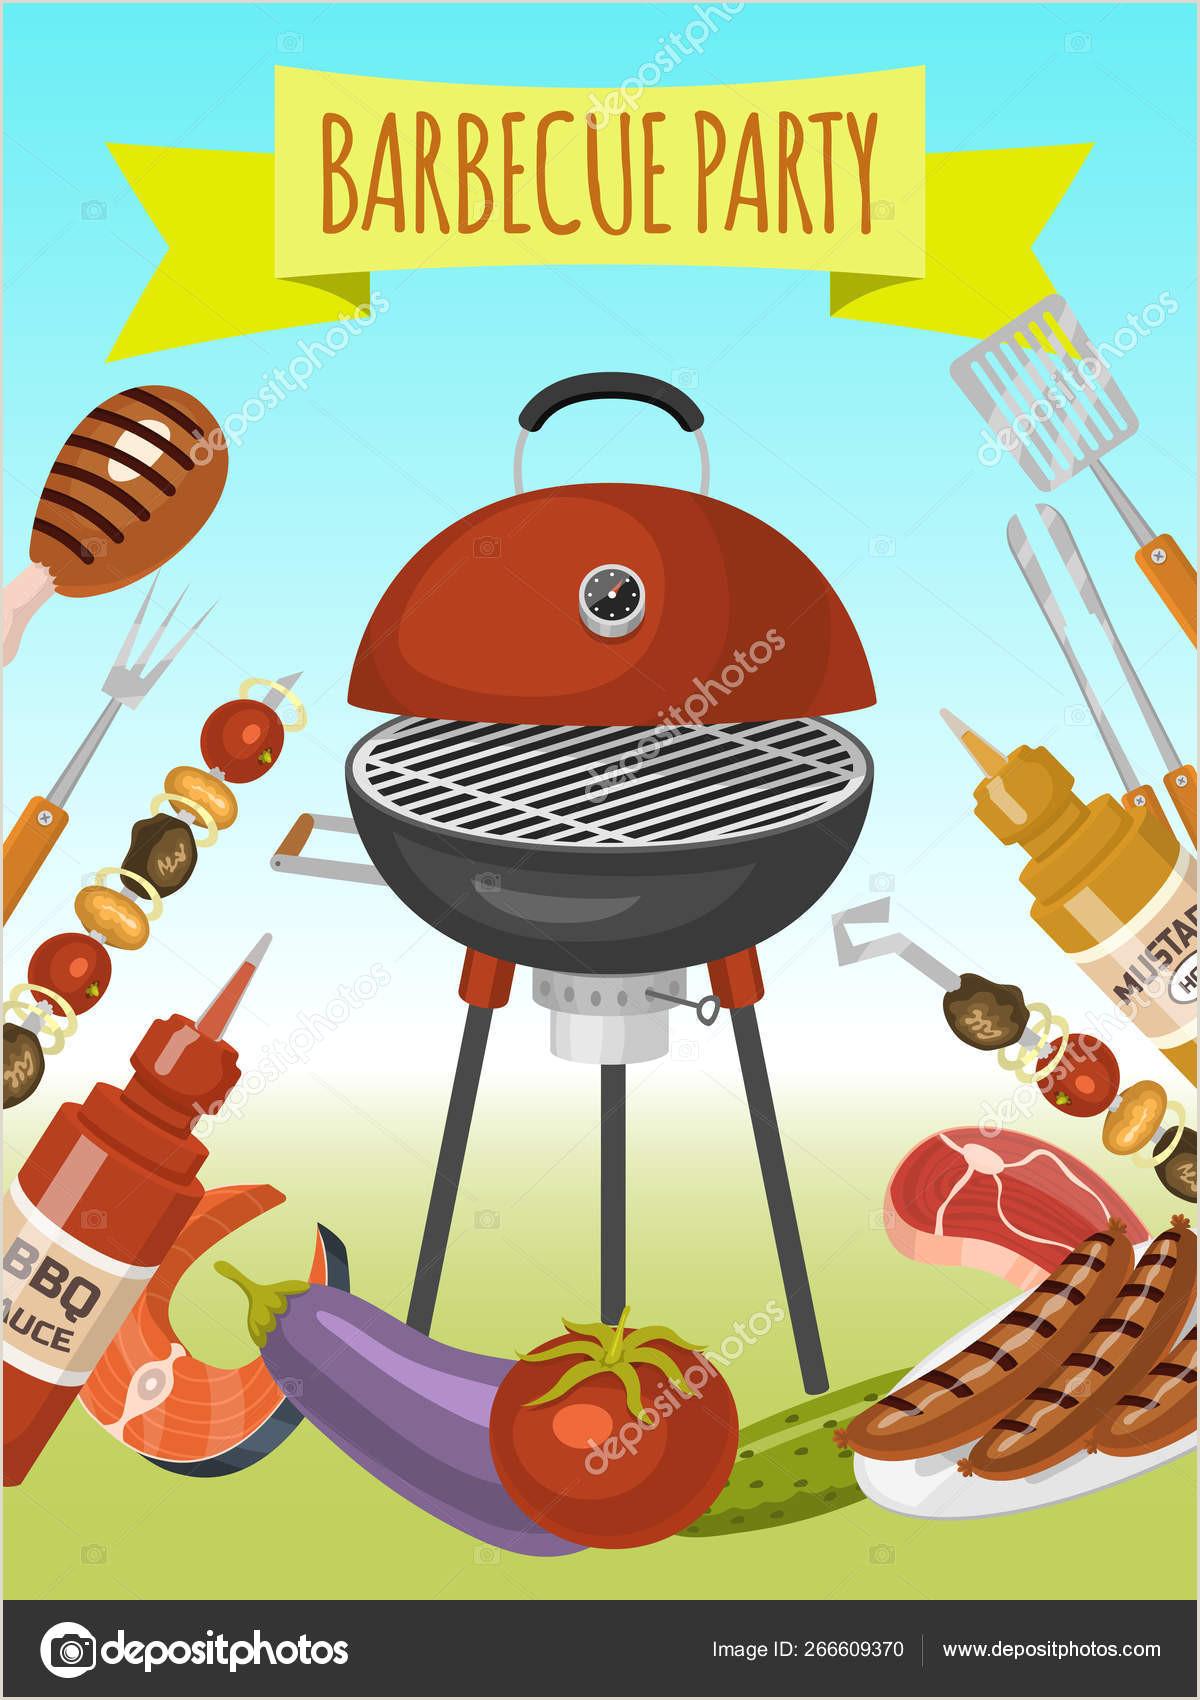 Barbeque Flyer Templates Free Barbeque Picnic Party Poster Meat Steak Roasted On Round Hot